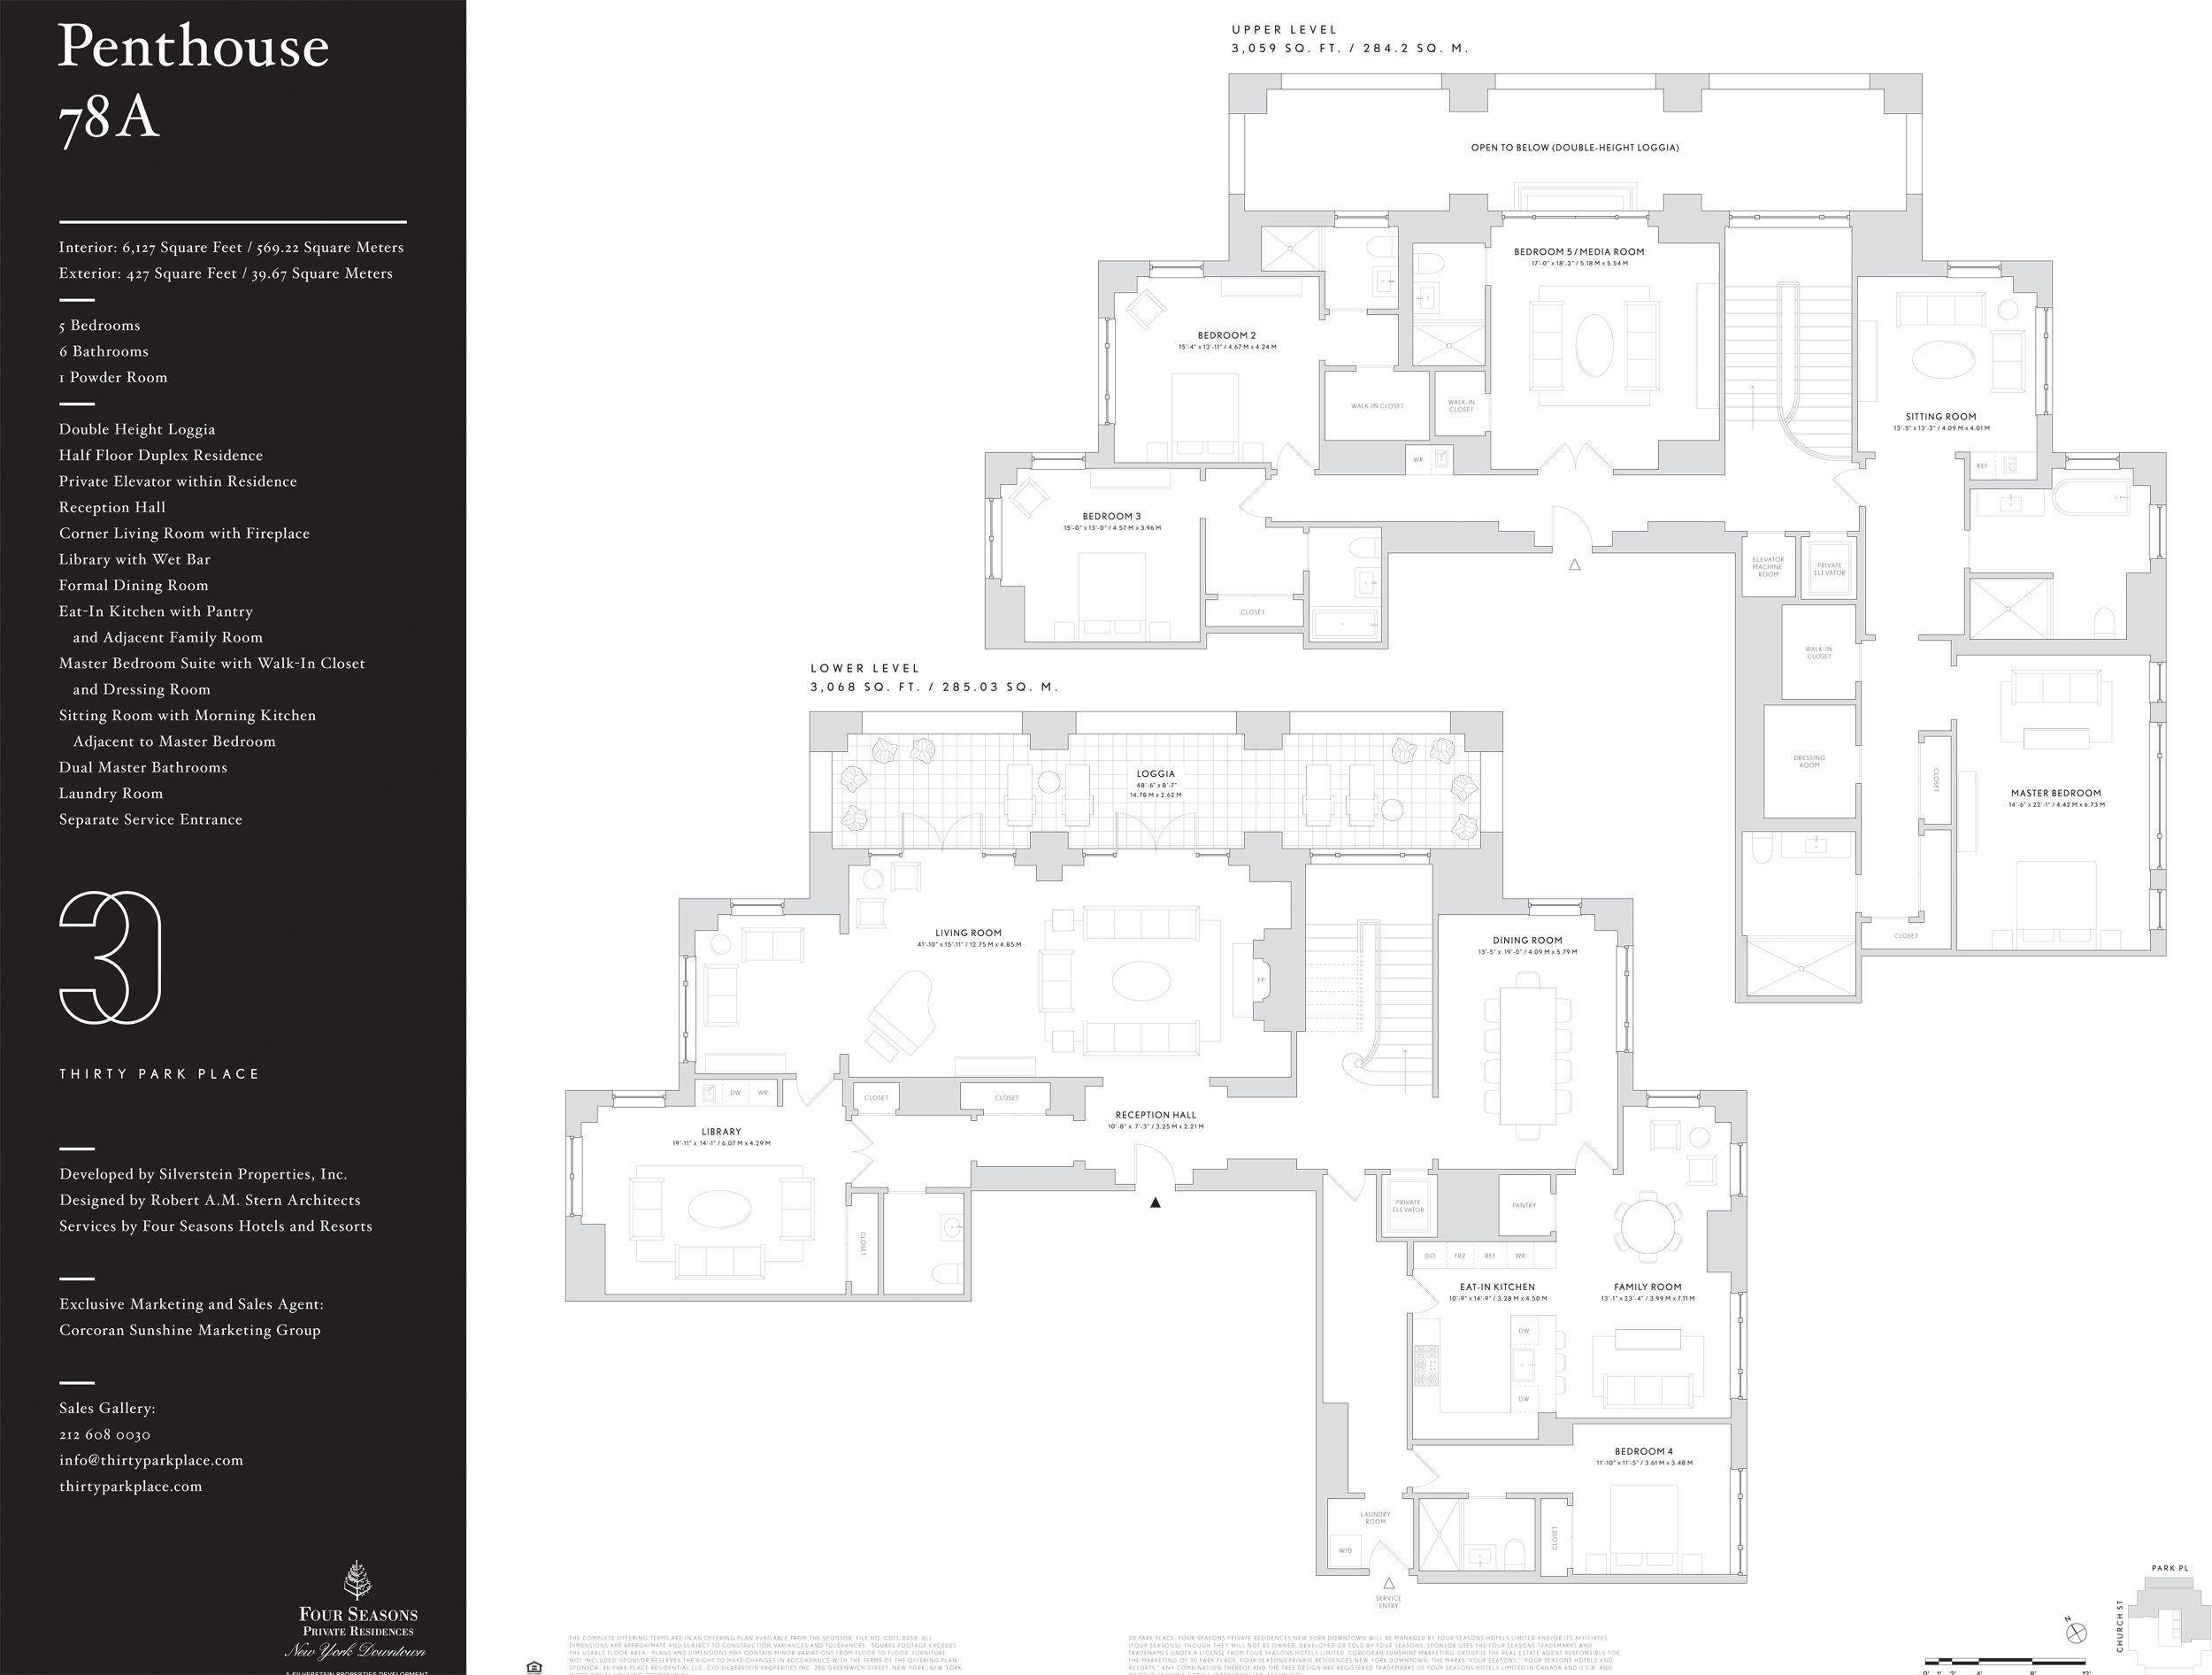 30 Park Place Reveals Sprawling New Penthouse for $32.5M ...